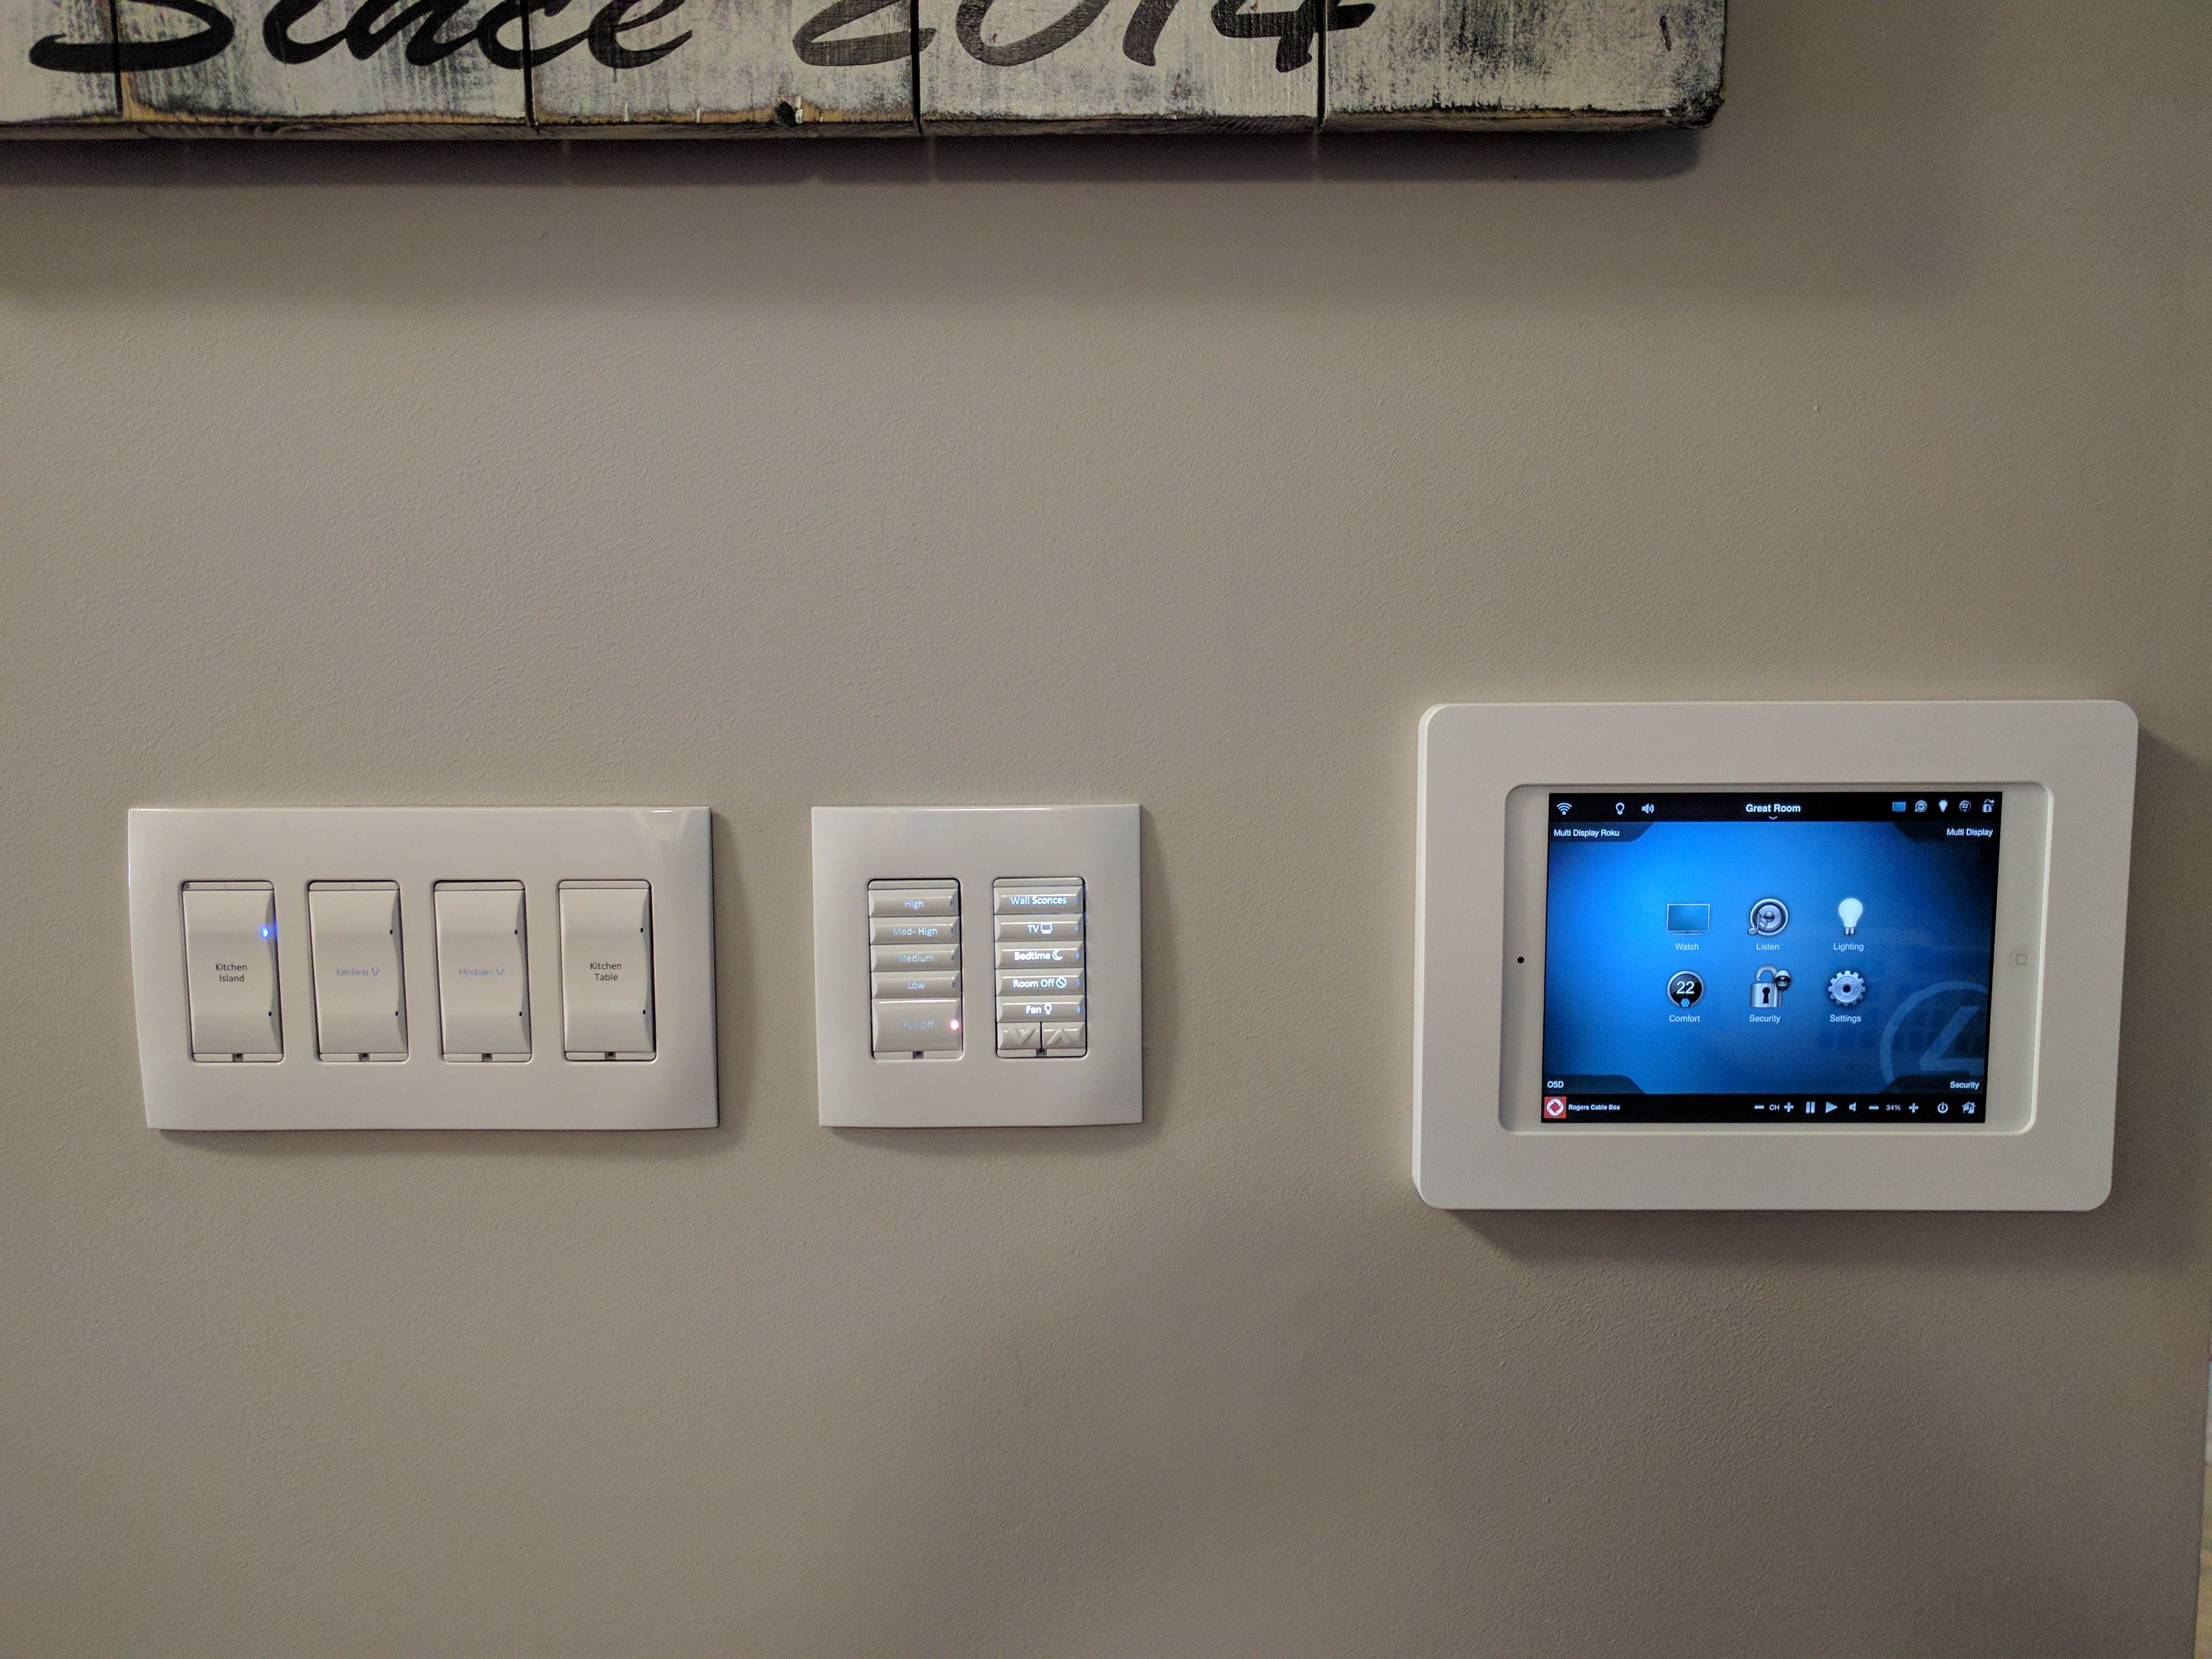 Want To Use A Tablet As A Home Controller Check Out Our Vidamount Which Allows You To Mount A Tablet For Smarthom Ipad Wall Mount Home Automation Smart Home